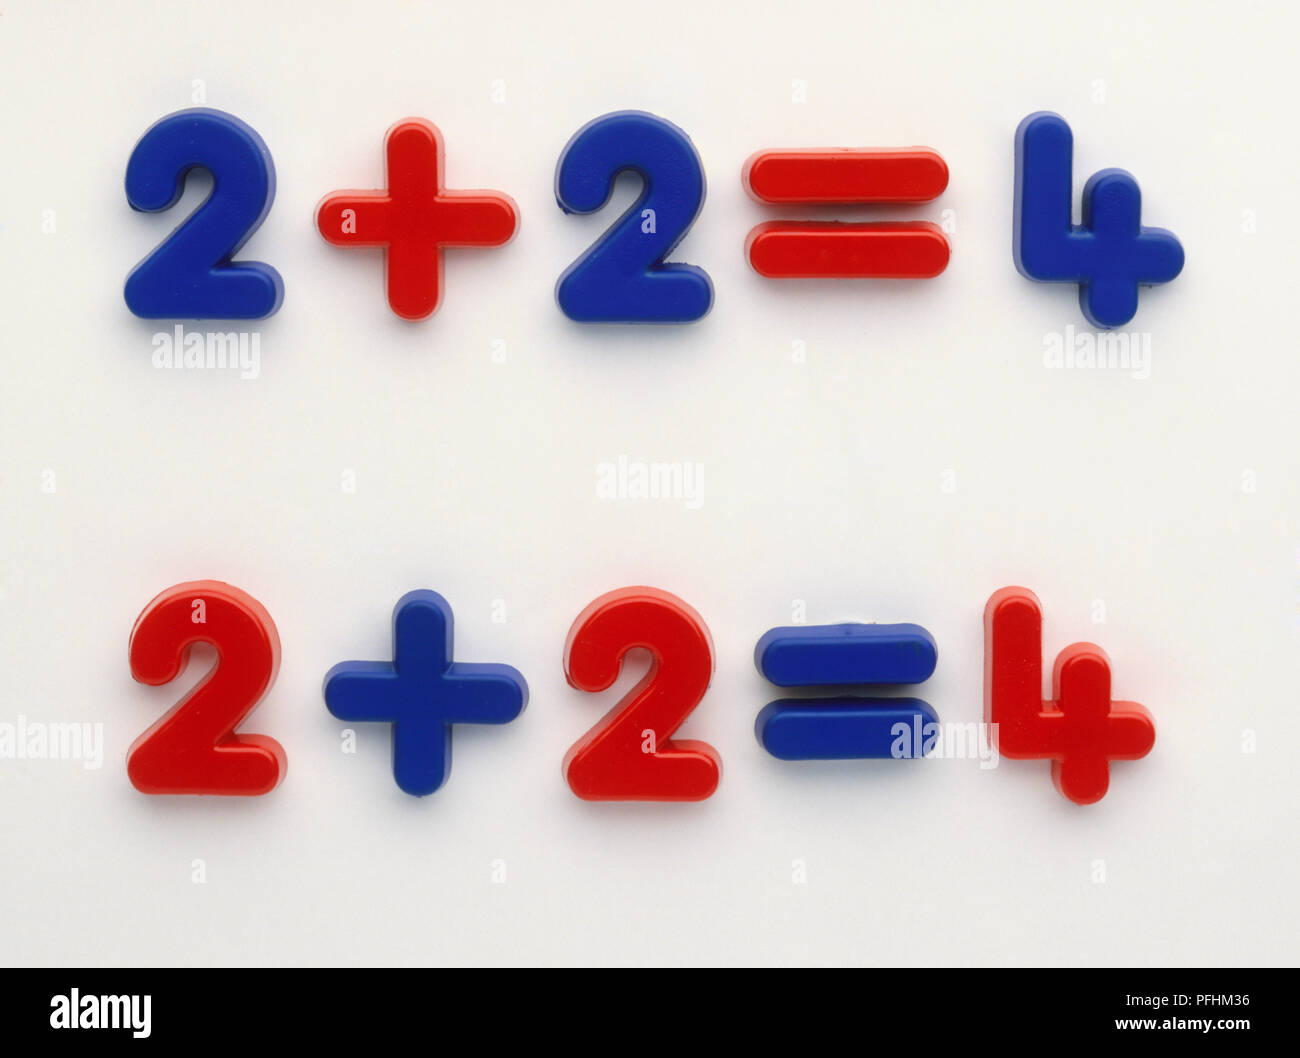 Addition, 2 plus 2 equals 4, numbers and mathematical symbols in blue and red. - Stock Image